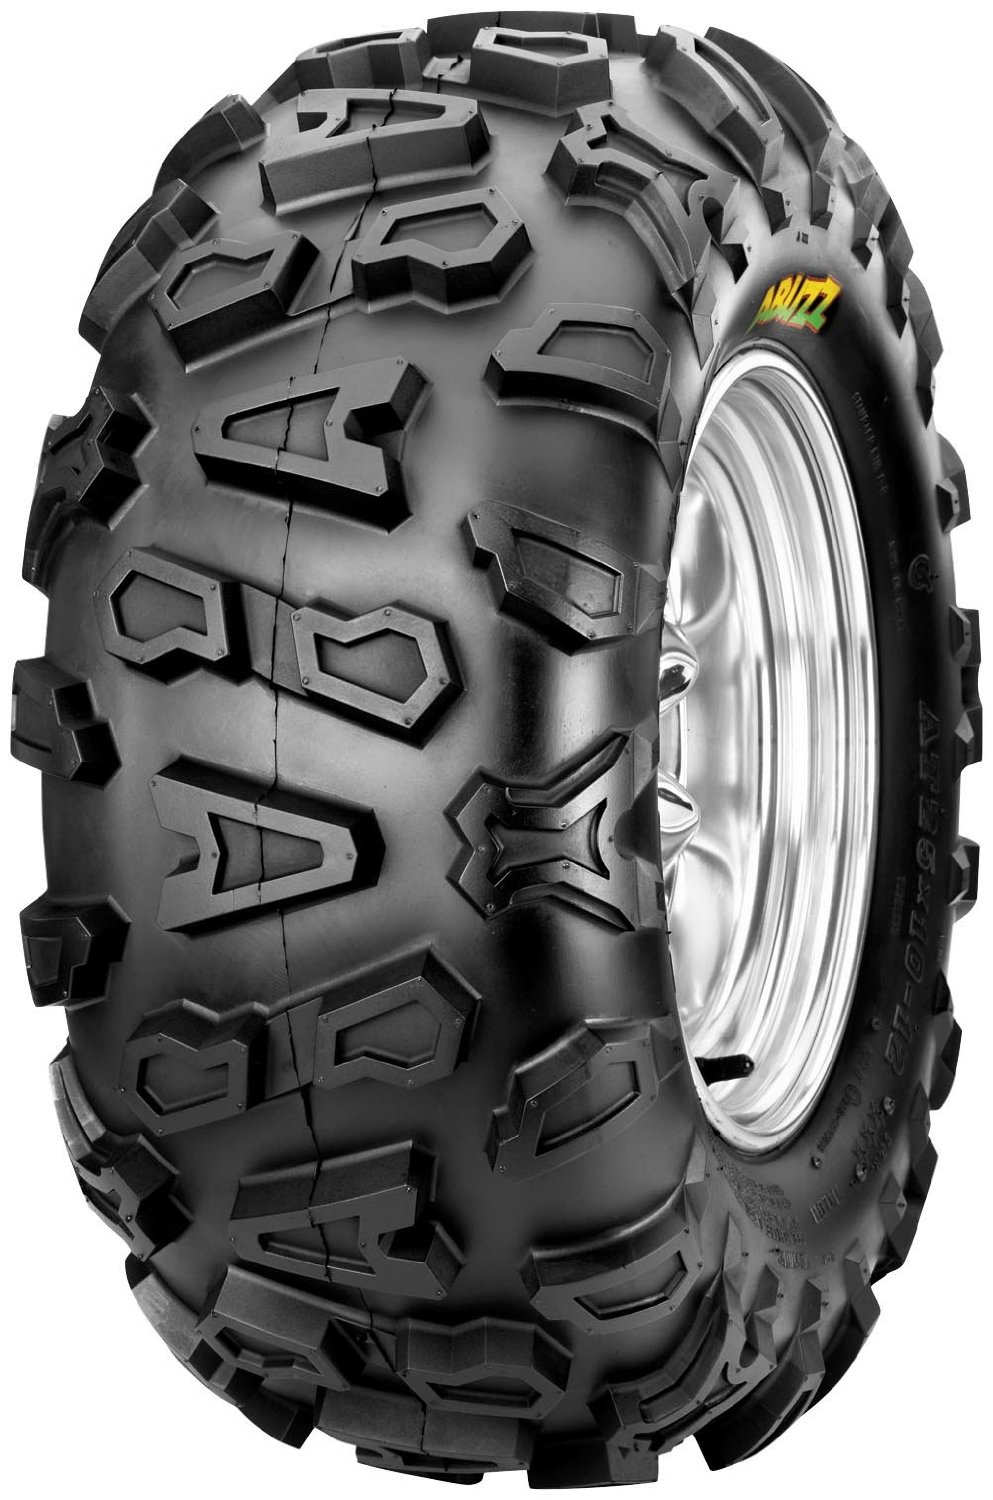 Cheng Shin Abuzz CU02 Tire - Rear - 24x10x11 , Tire Size: 24x10x11, Rim Size: 11, Position: Rear, Tire Ply: 6, Tire Type: ATV/UTV, Tire Construction: Bias, Tire Application: All-Terrain TM165401G0 by CST